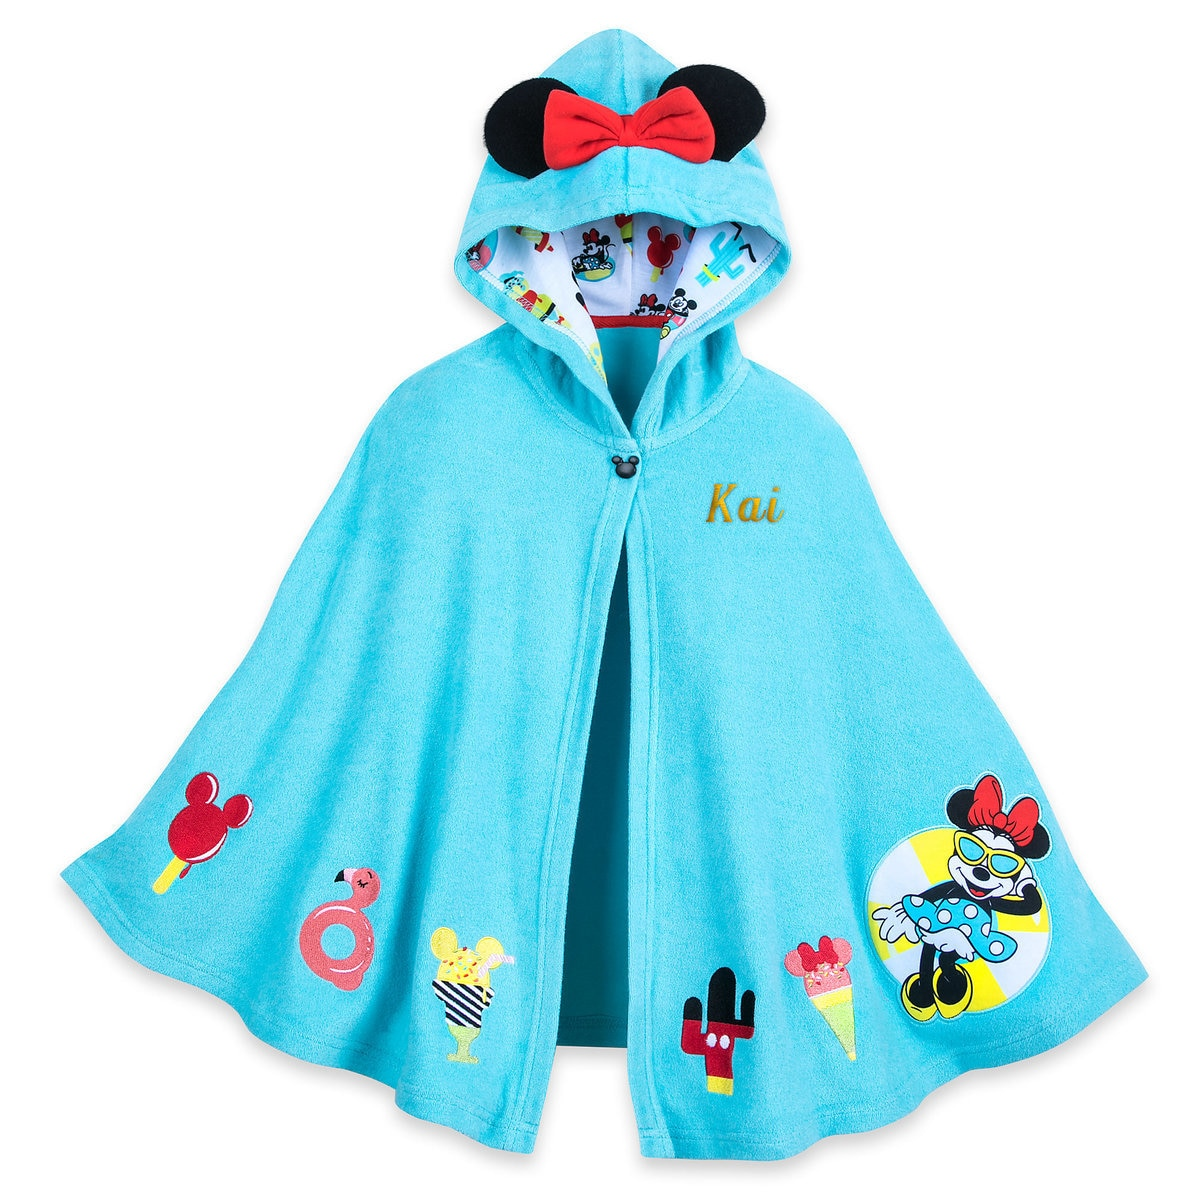 095c0787e9 Product Image of Minnie Mouse Summer Fun Swim Cover-Up for Girls -  Personalized #